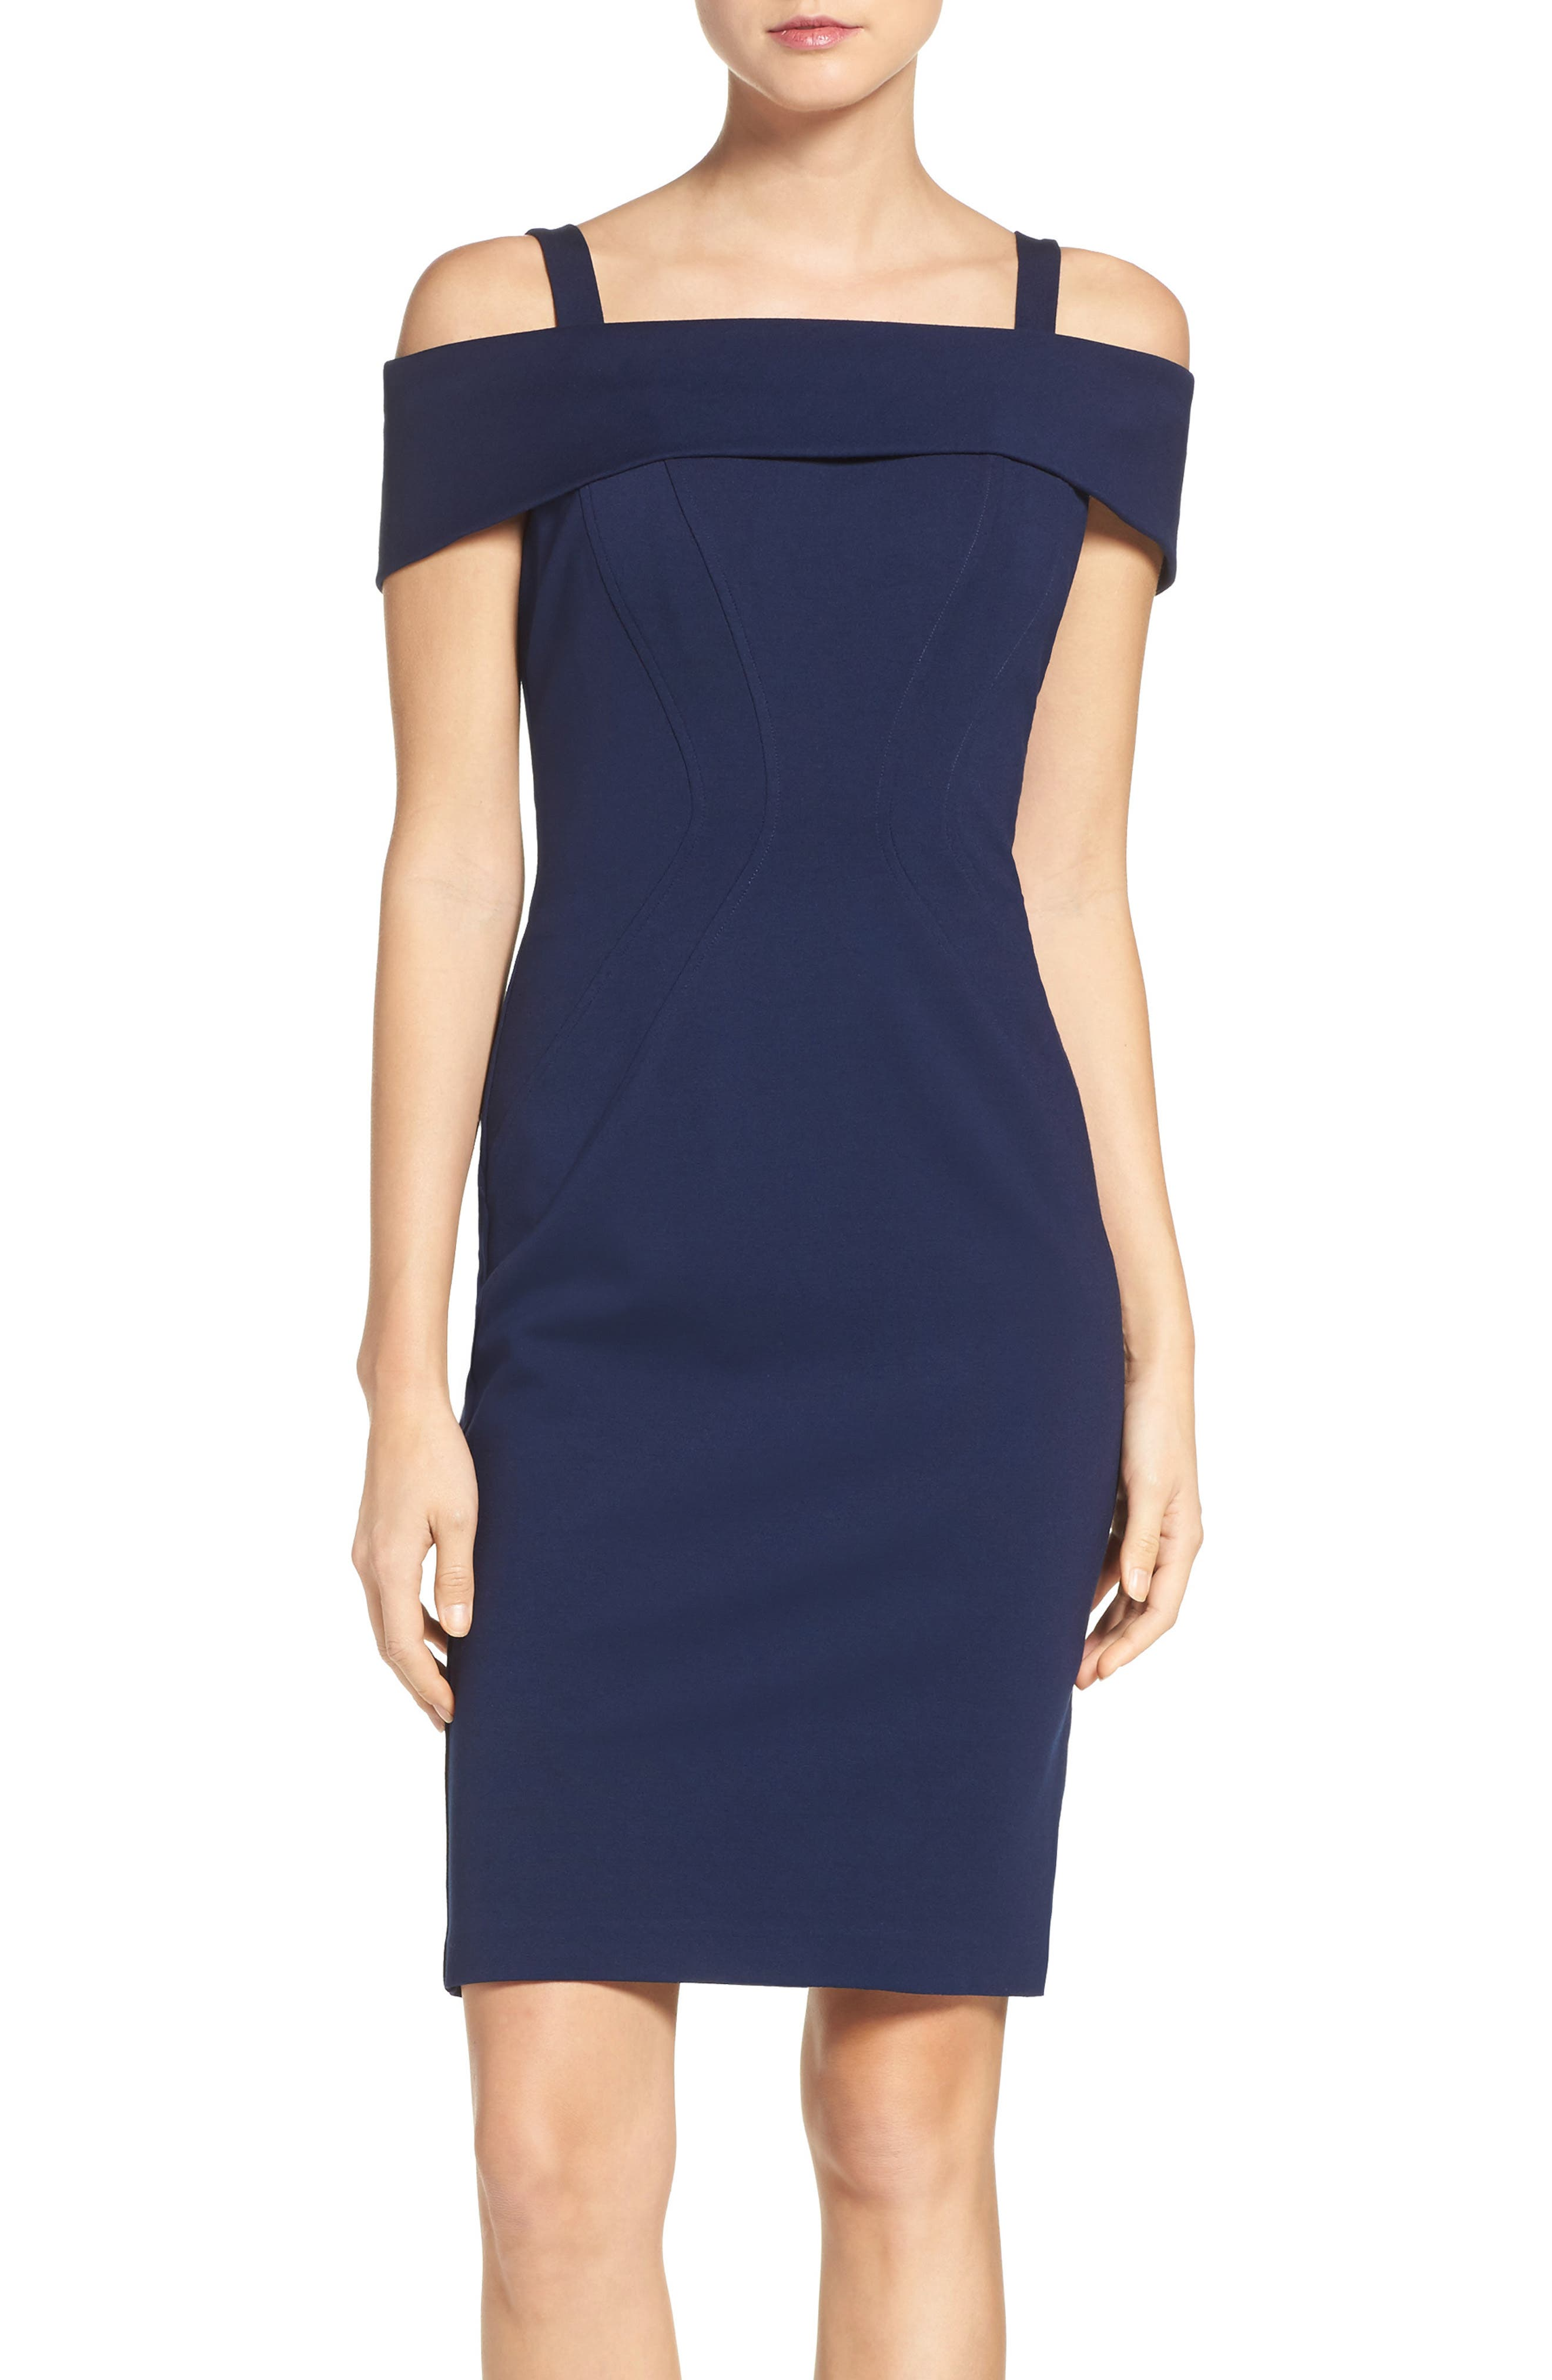 Alternate Image 1 Selected - Vince Camuto Ponte Body-Con Dress